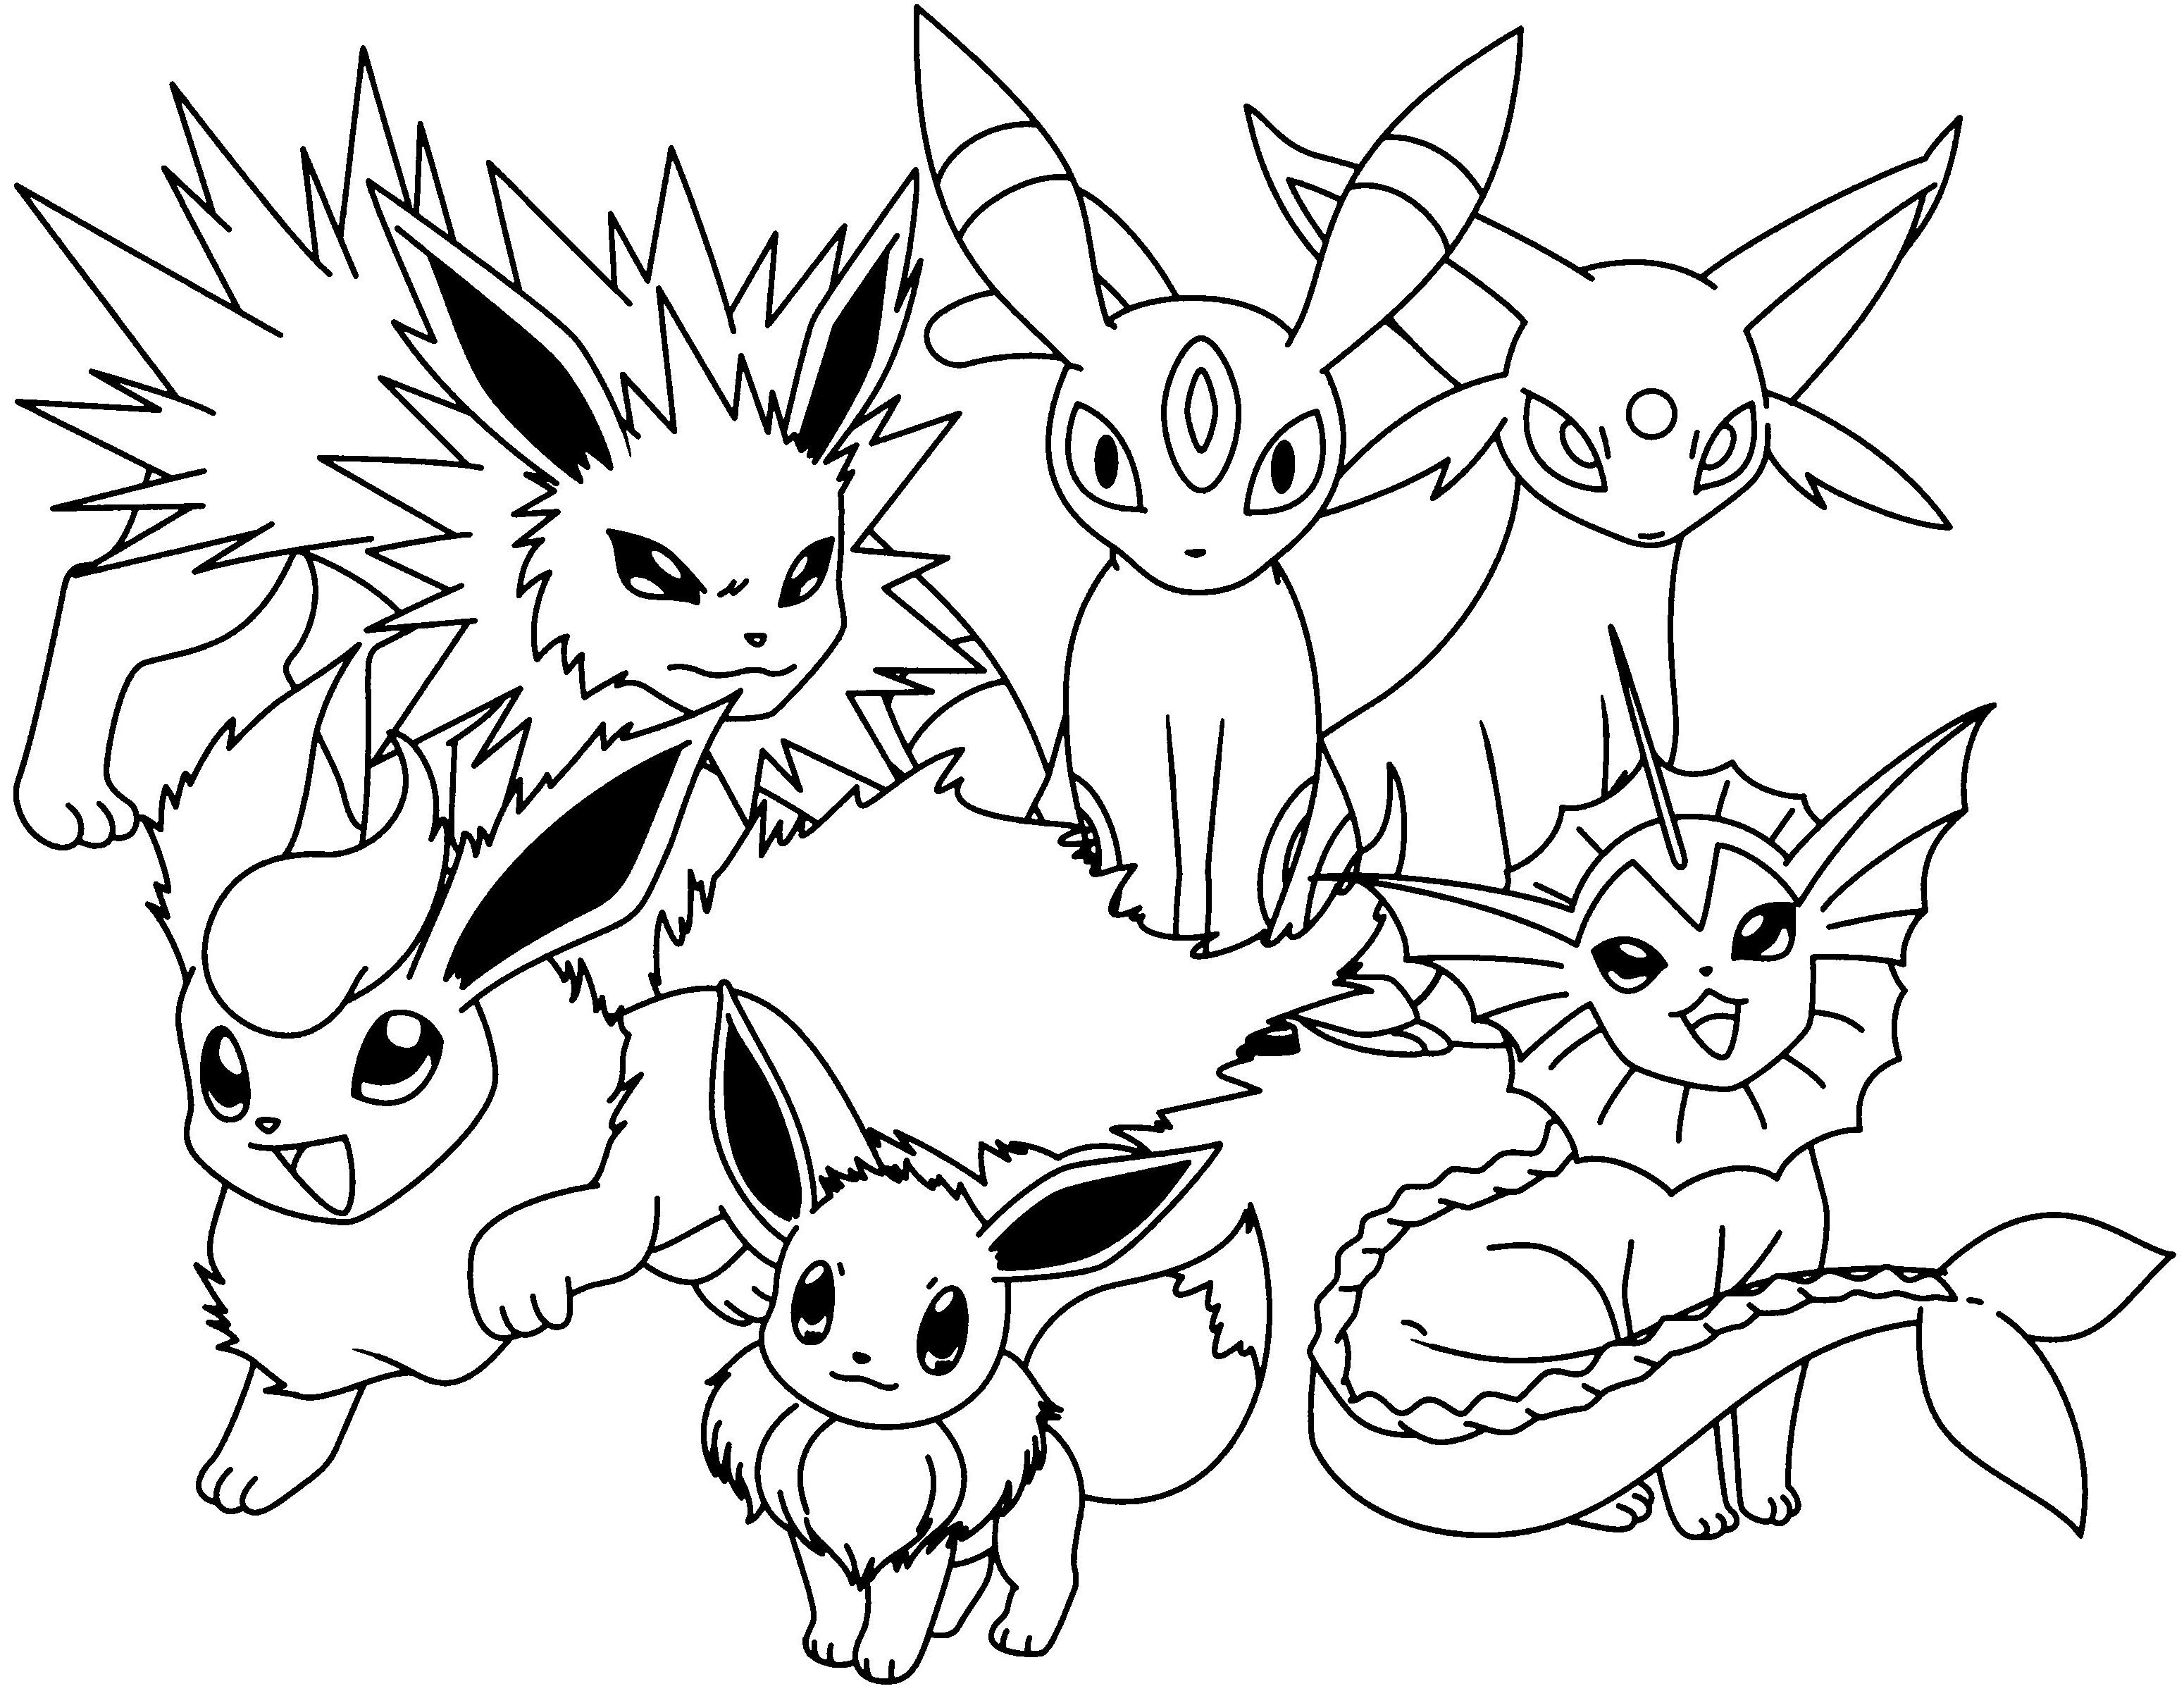 Pokemon Coloring Pages Join Your Favorite Pokemon On An Adventure In 2021 Pokemon Coloring Pokemon Coloring Pages Pokemon Coloring Sheets